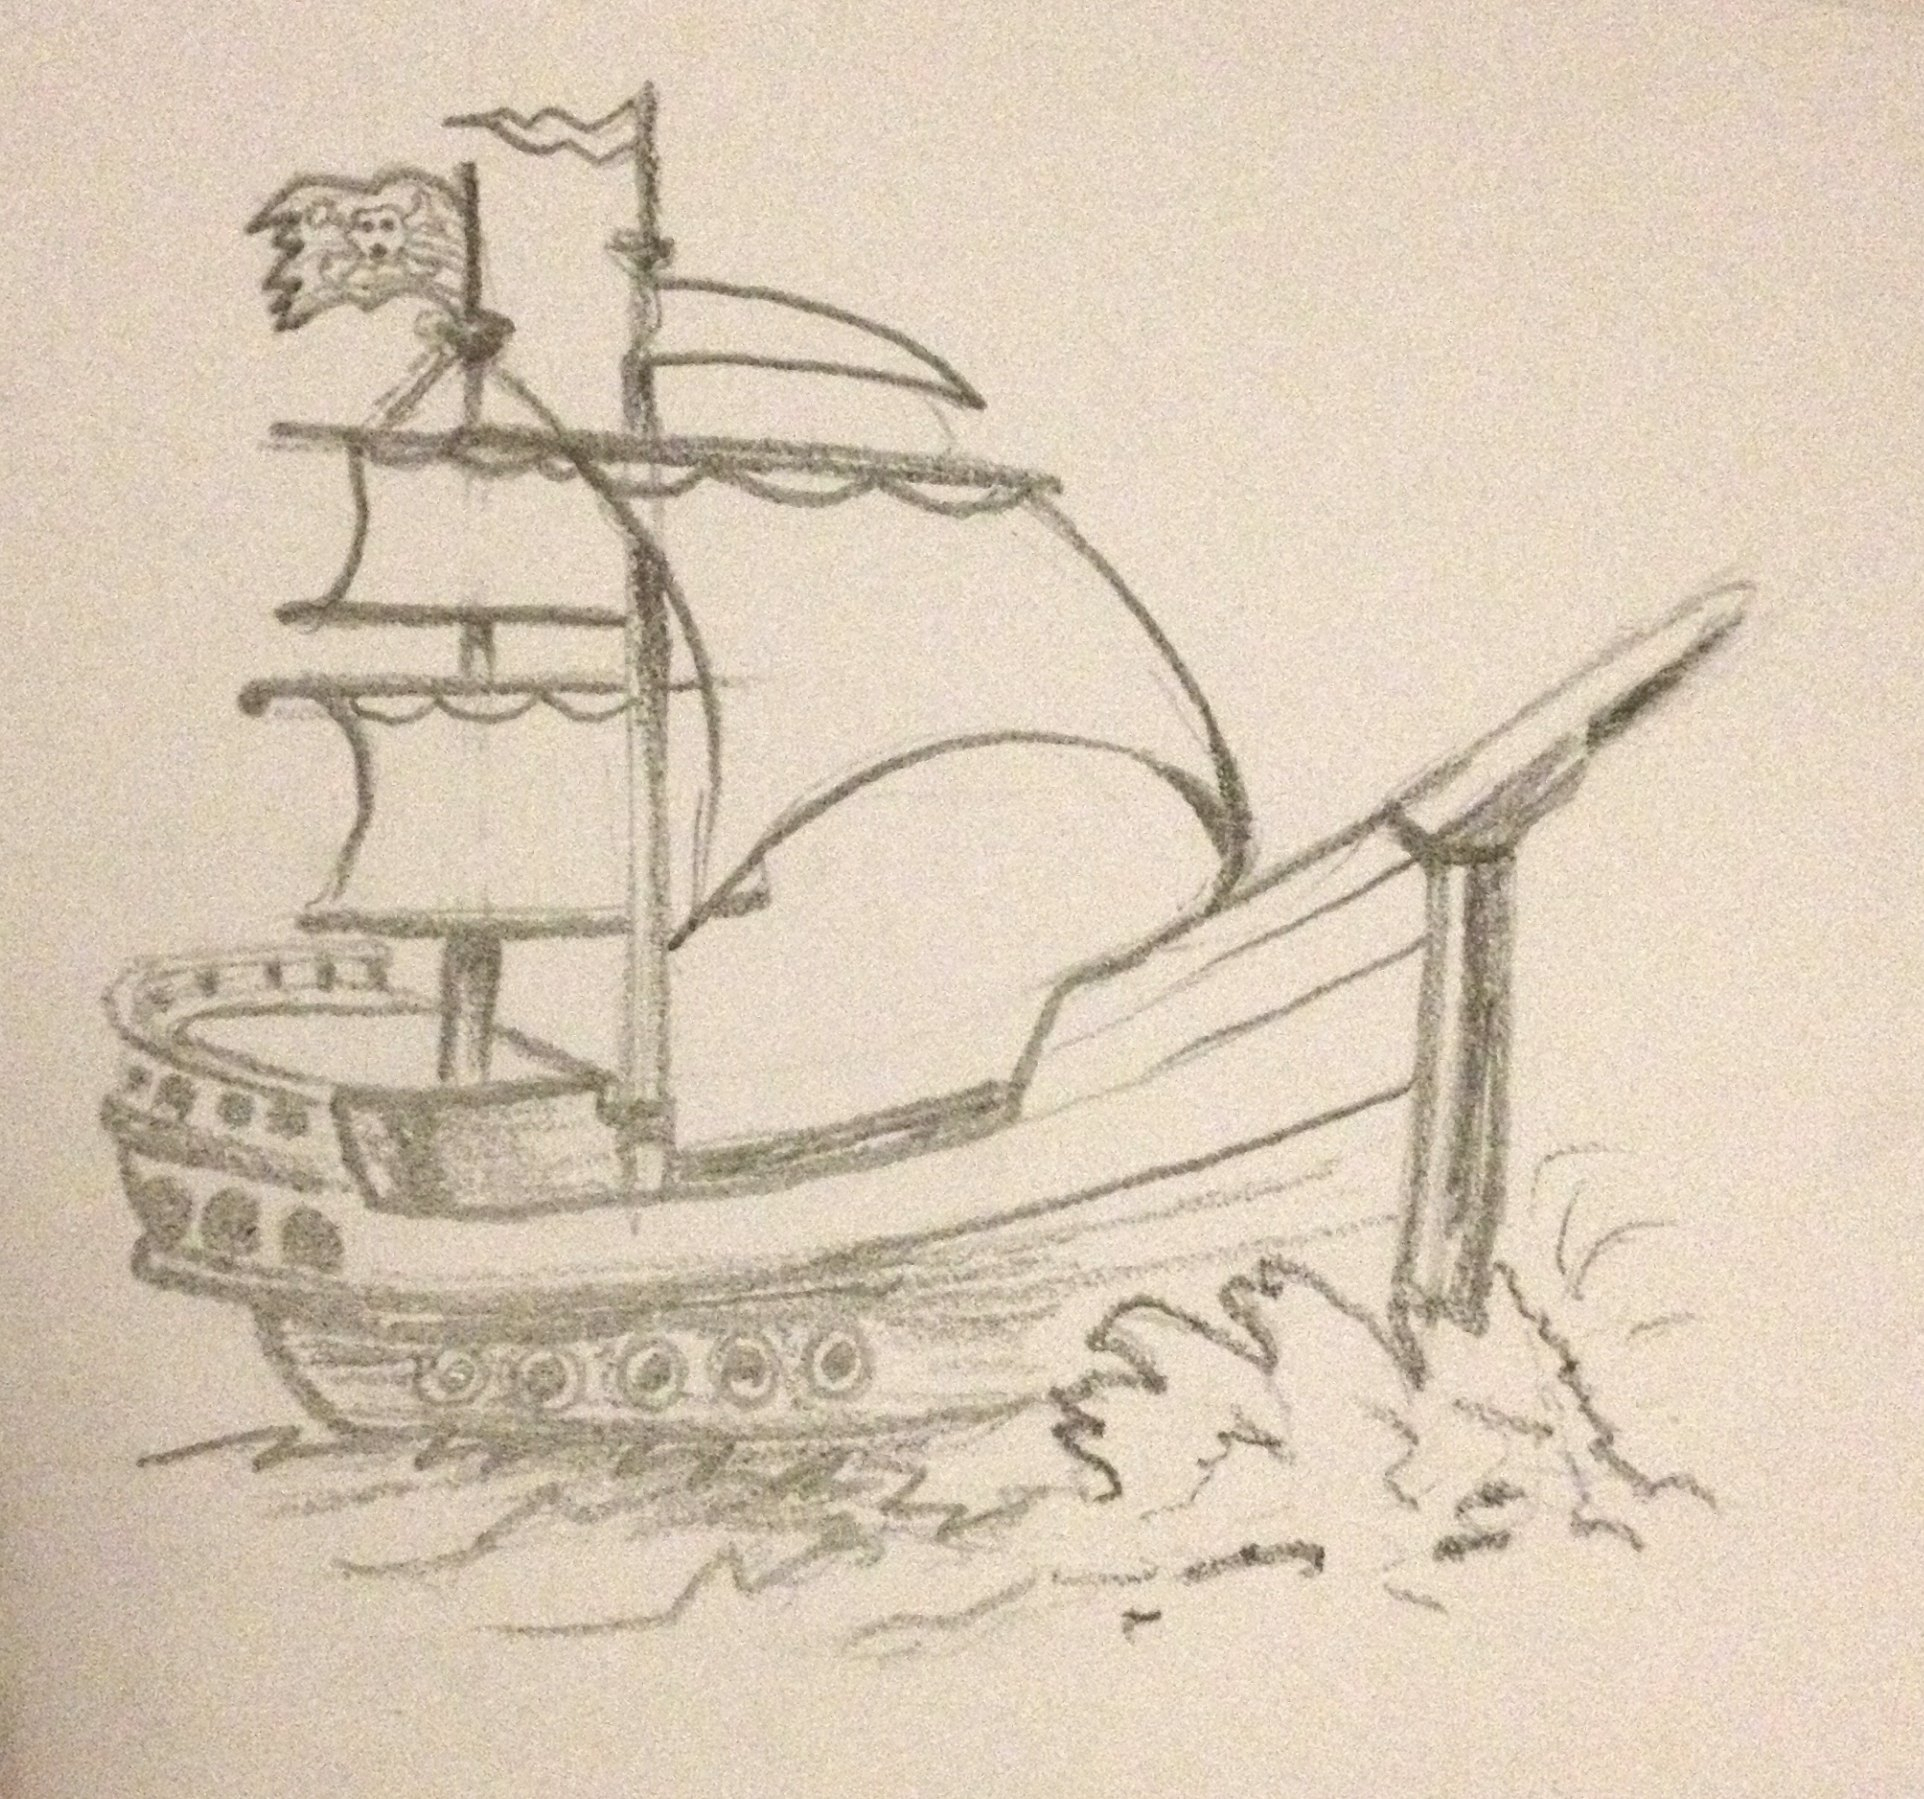 1924x1799 Pirate Ship Pencil Drawing Pirate Ship Pencil Drawing Pencil